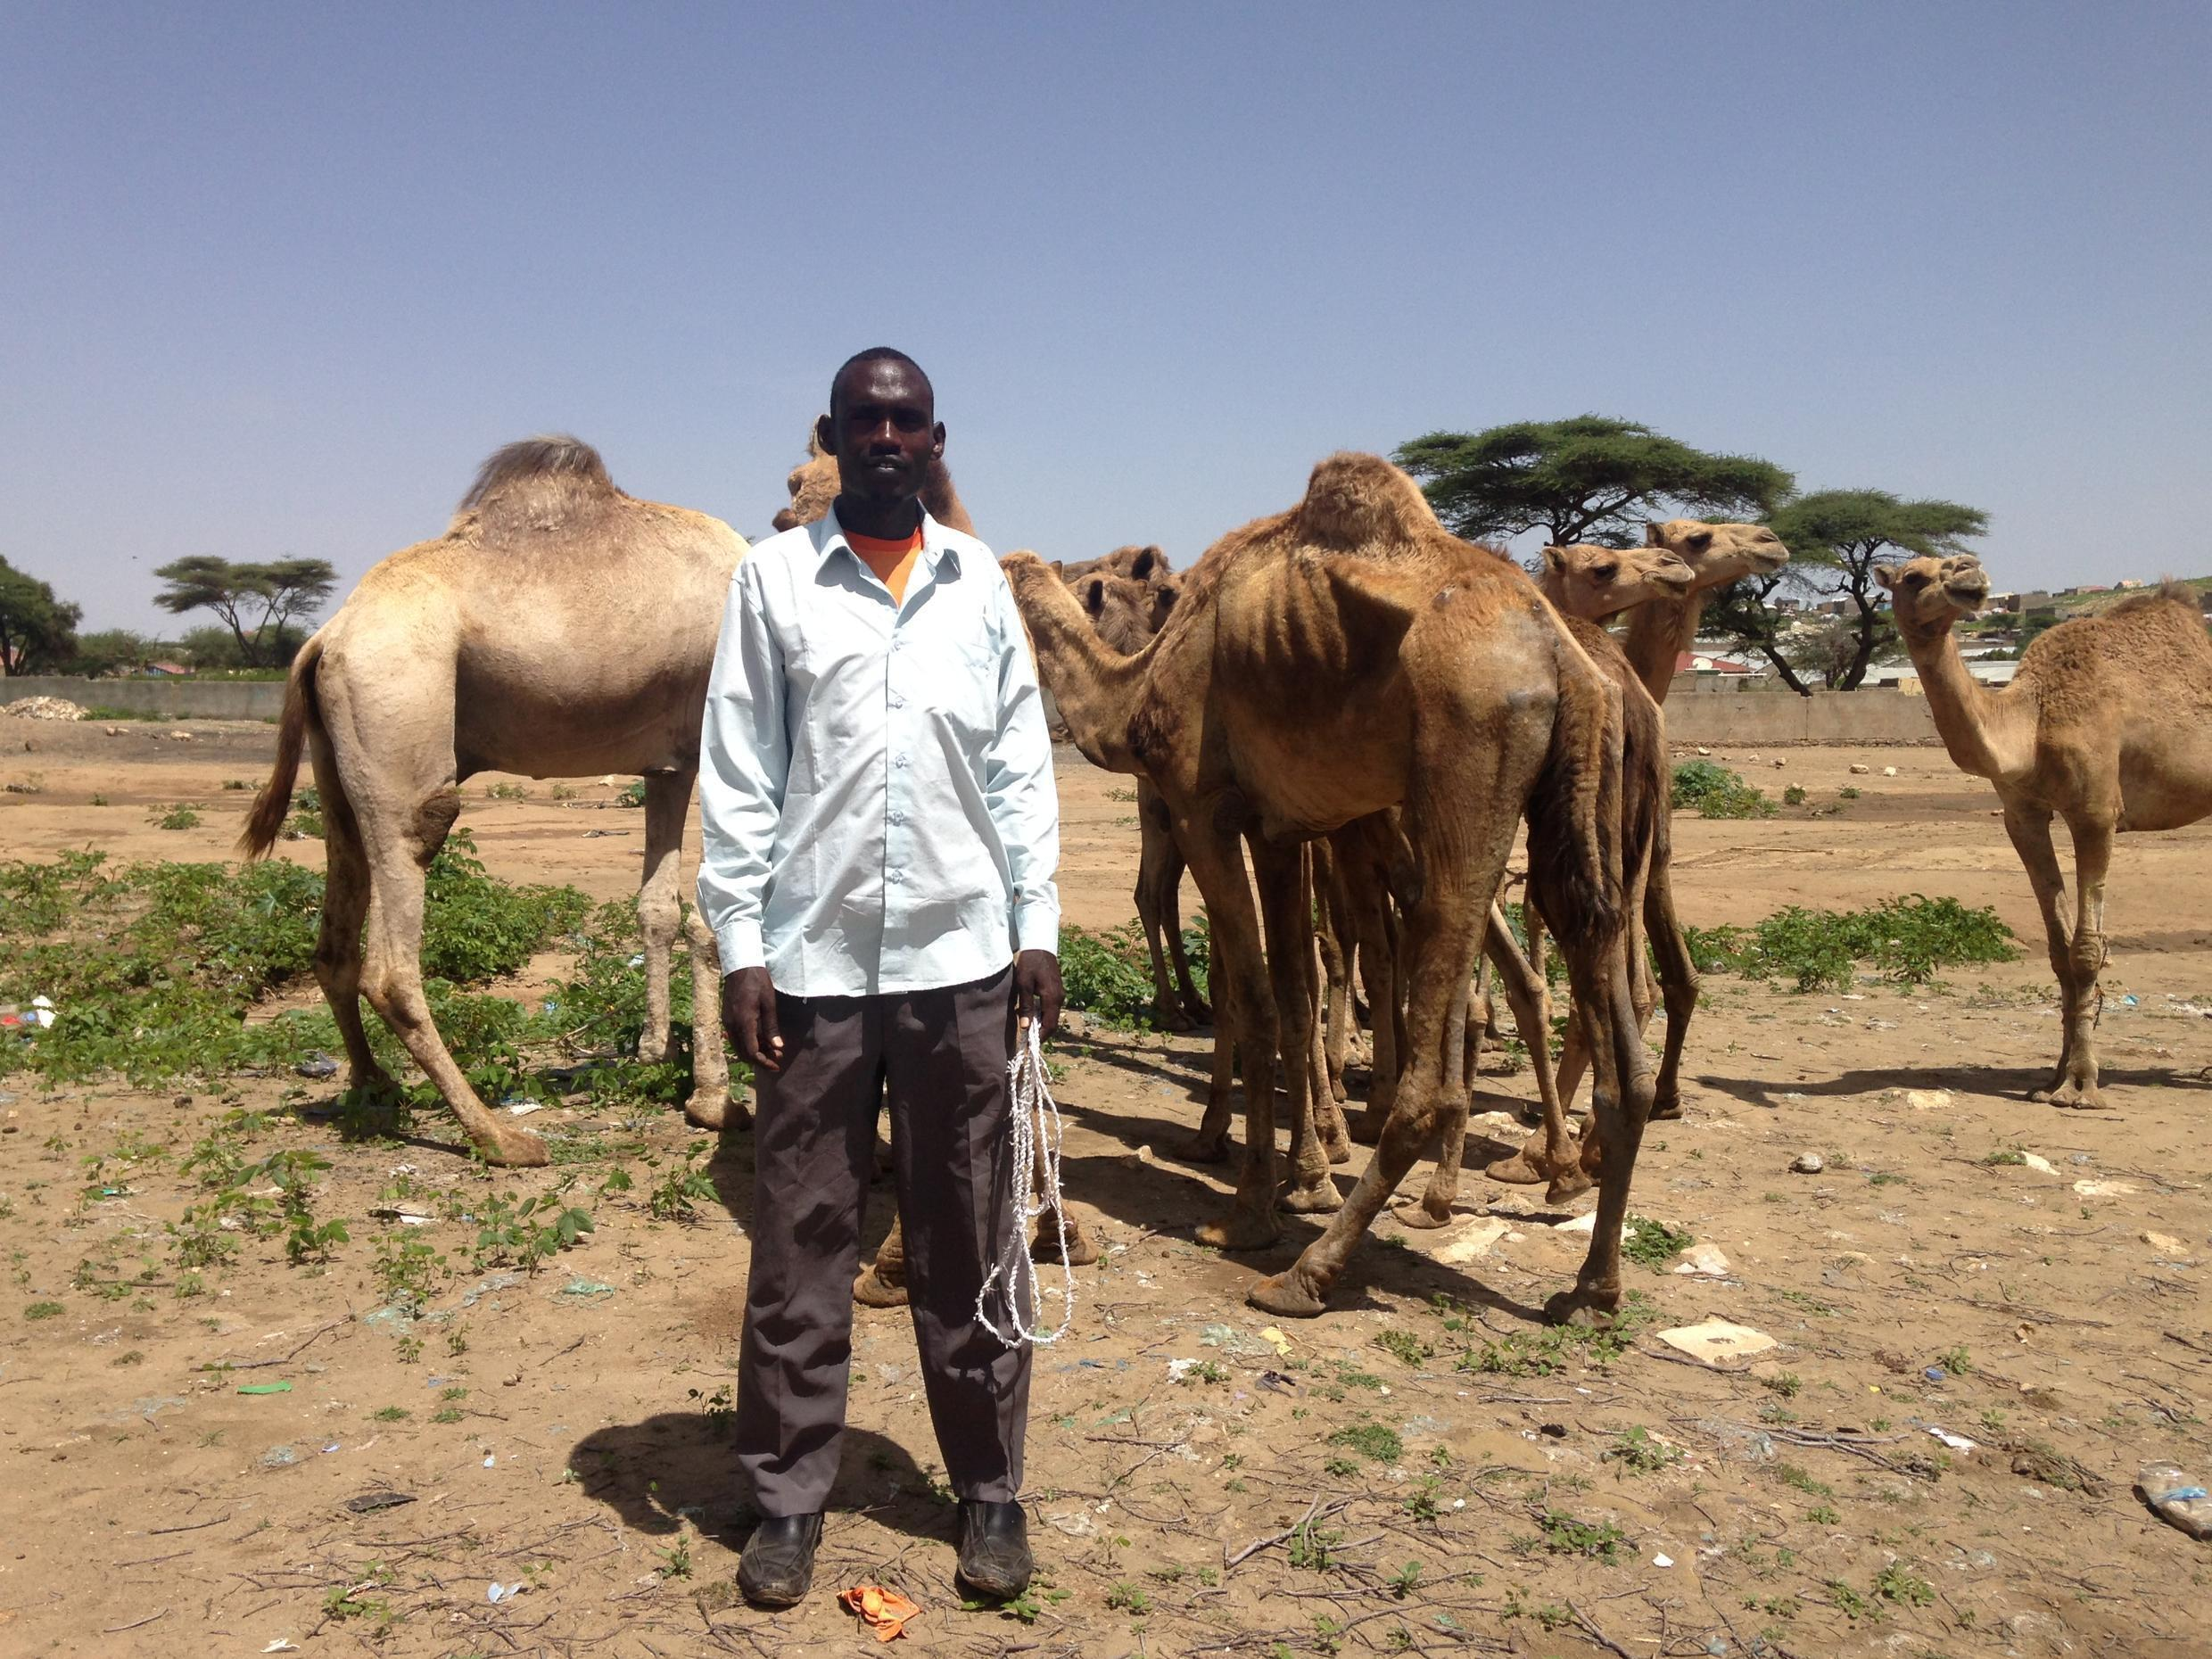 At the livestock market in Borama, drought survivors are for sale, including these camels